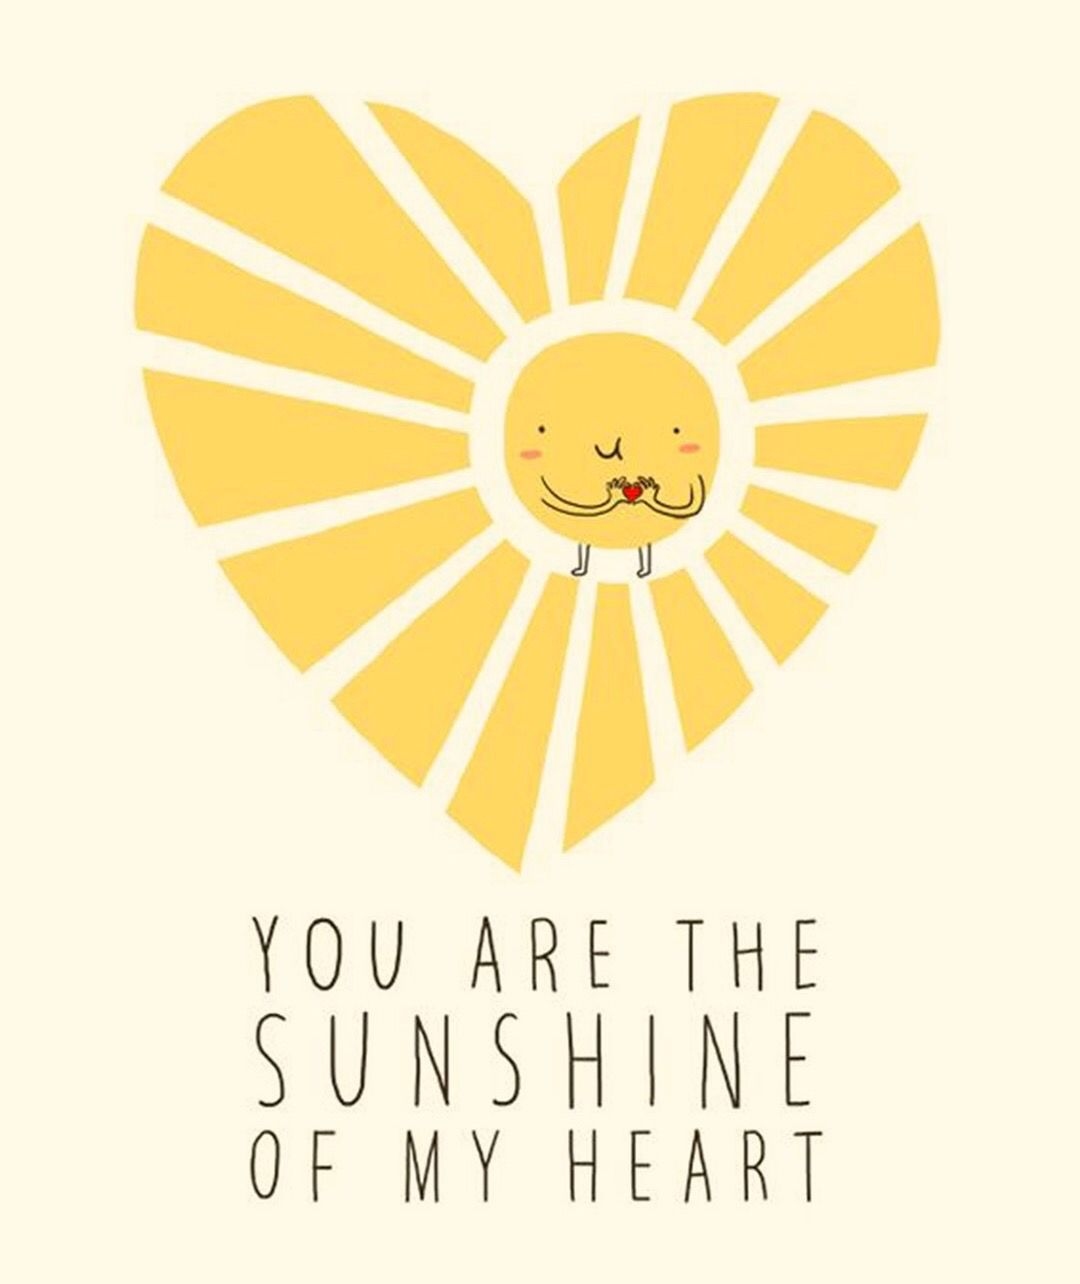 You are the of. Clipart sunshine heart sunshine